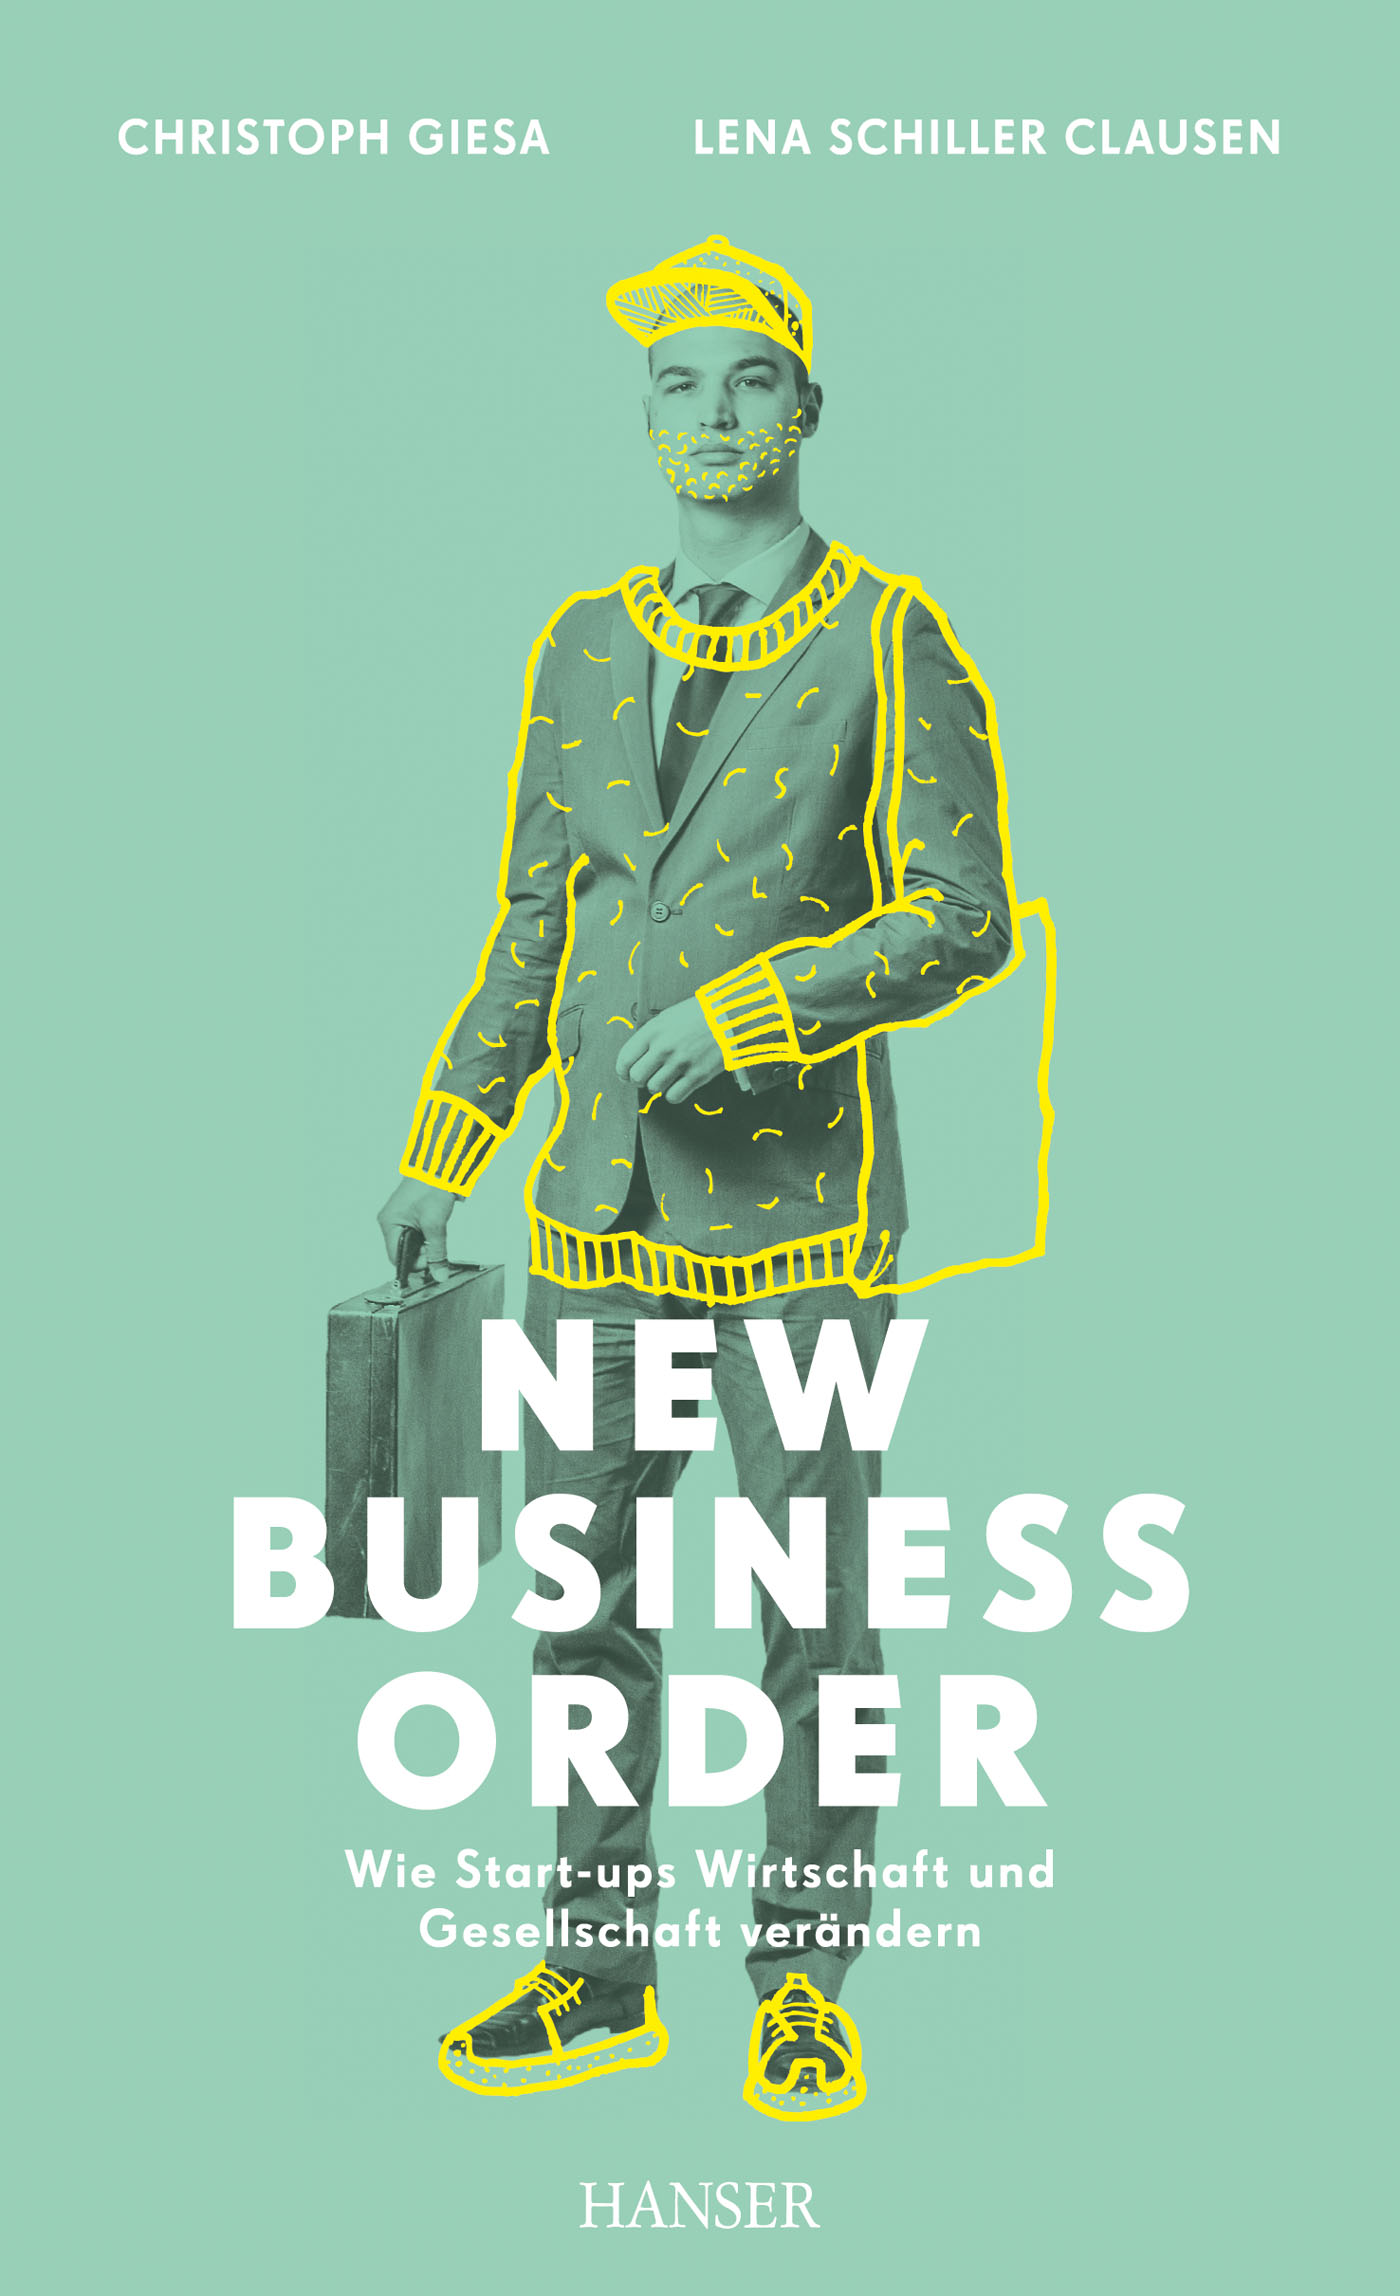 NewBusinessOder_Cover_131021.indd